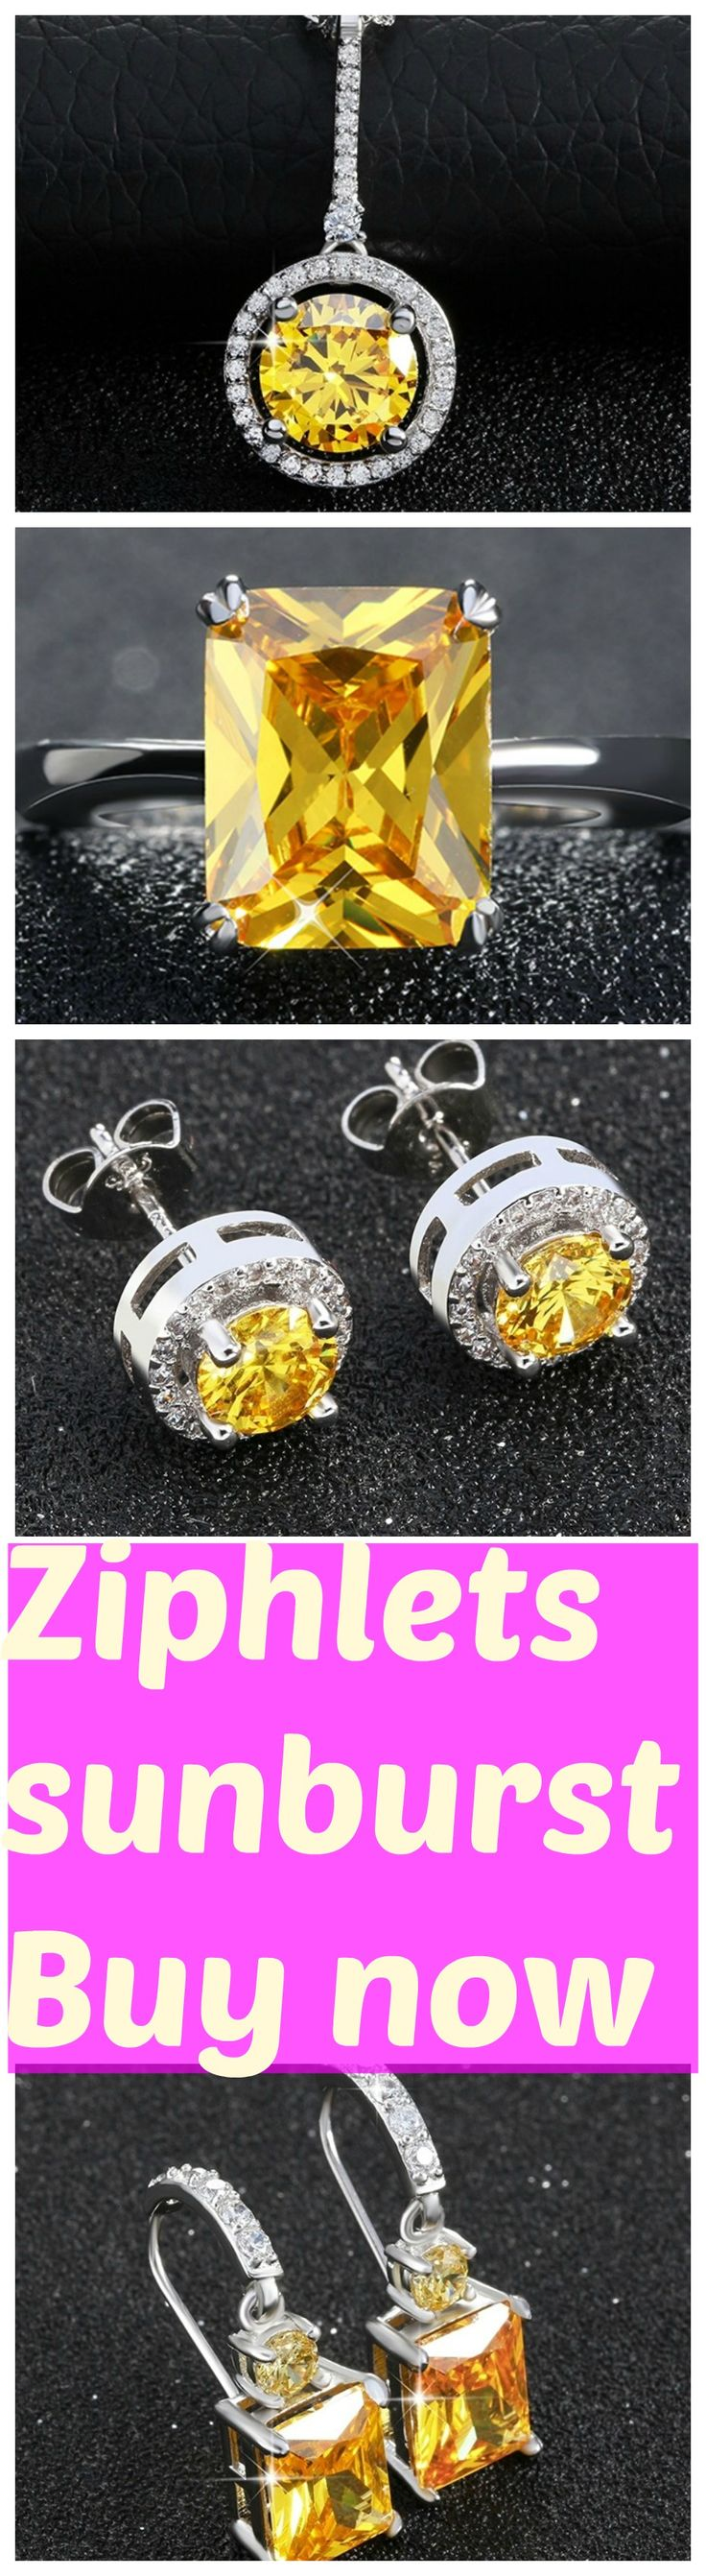 Get 10% off all Ziphlets sunburst jewelry. use code SUNBURST10